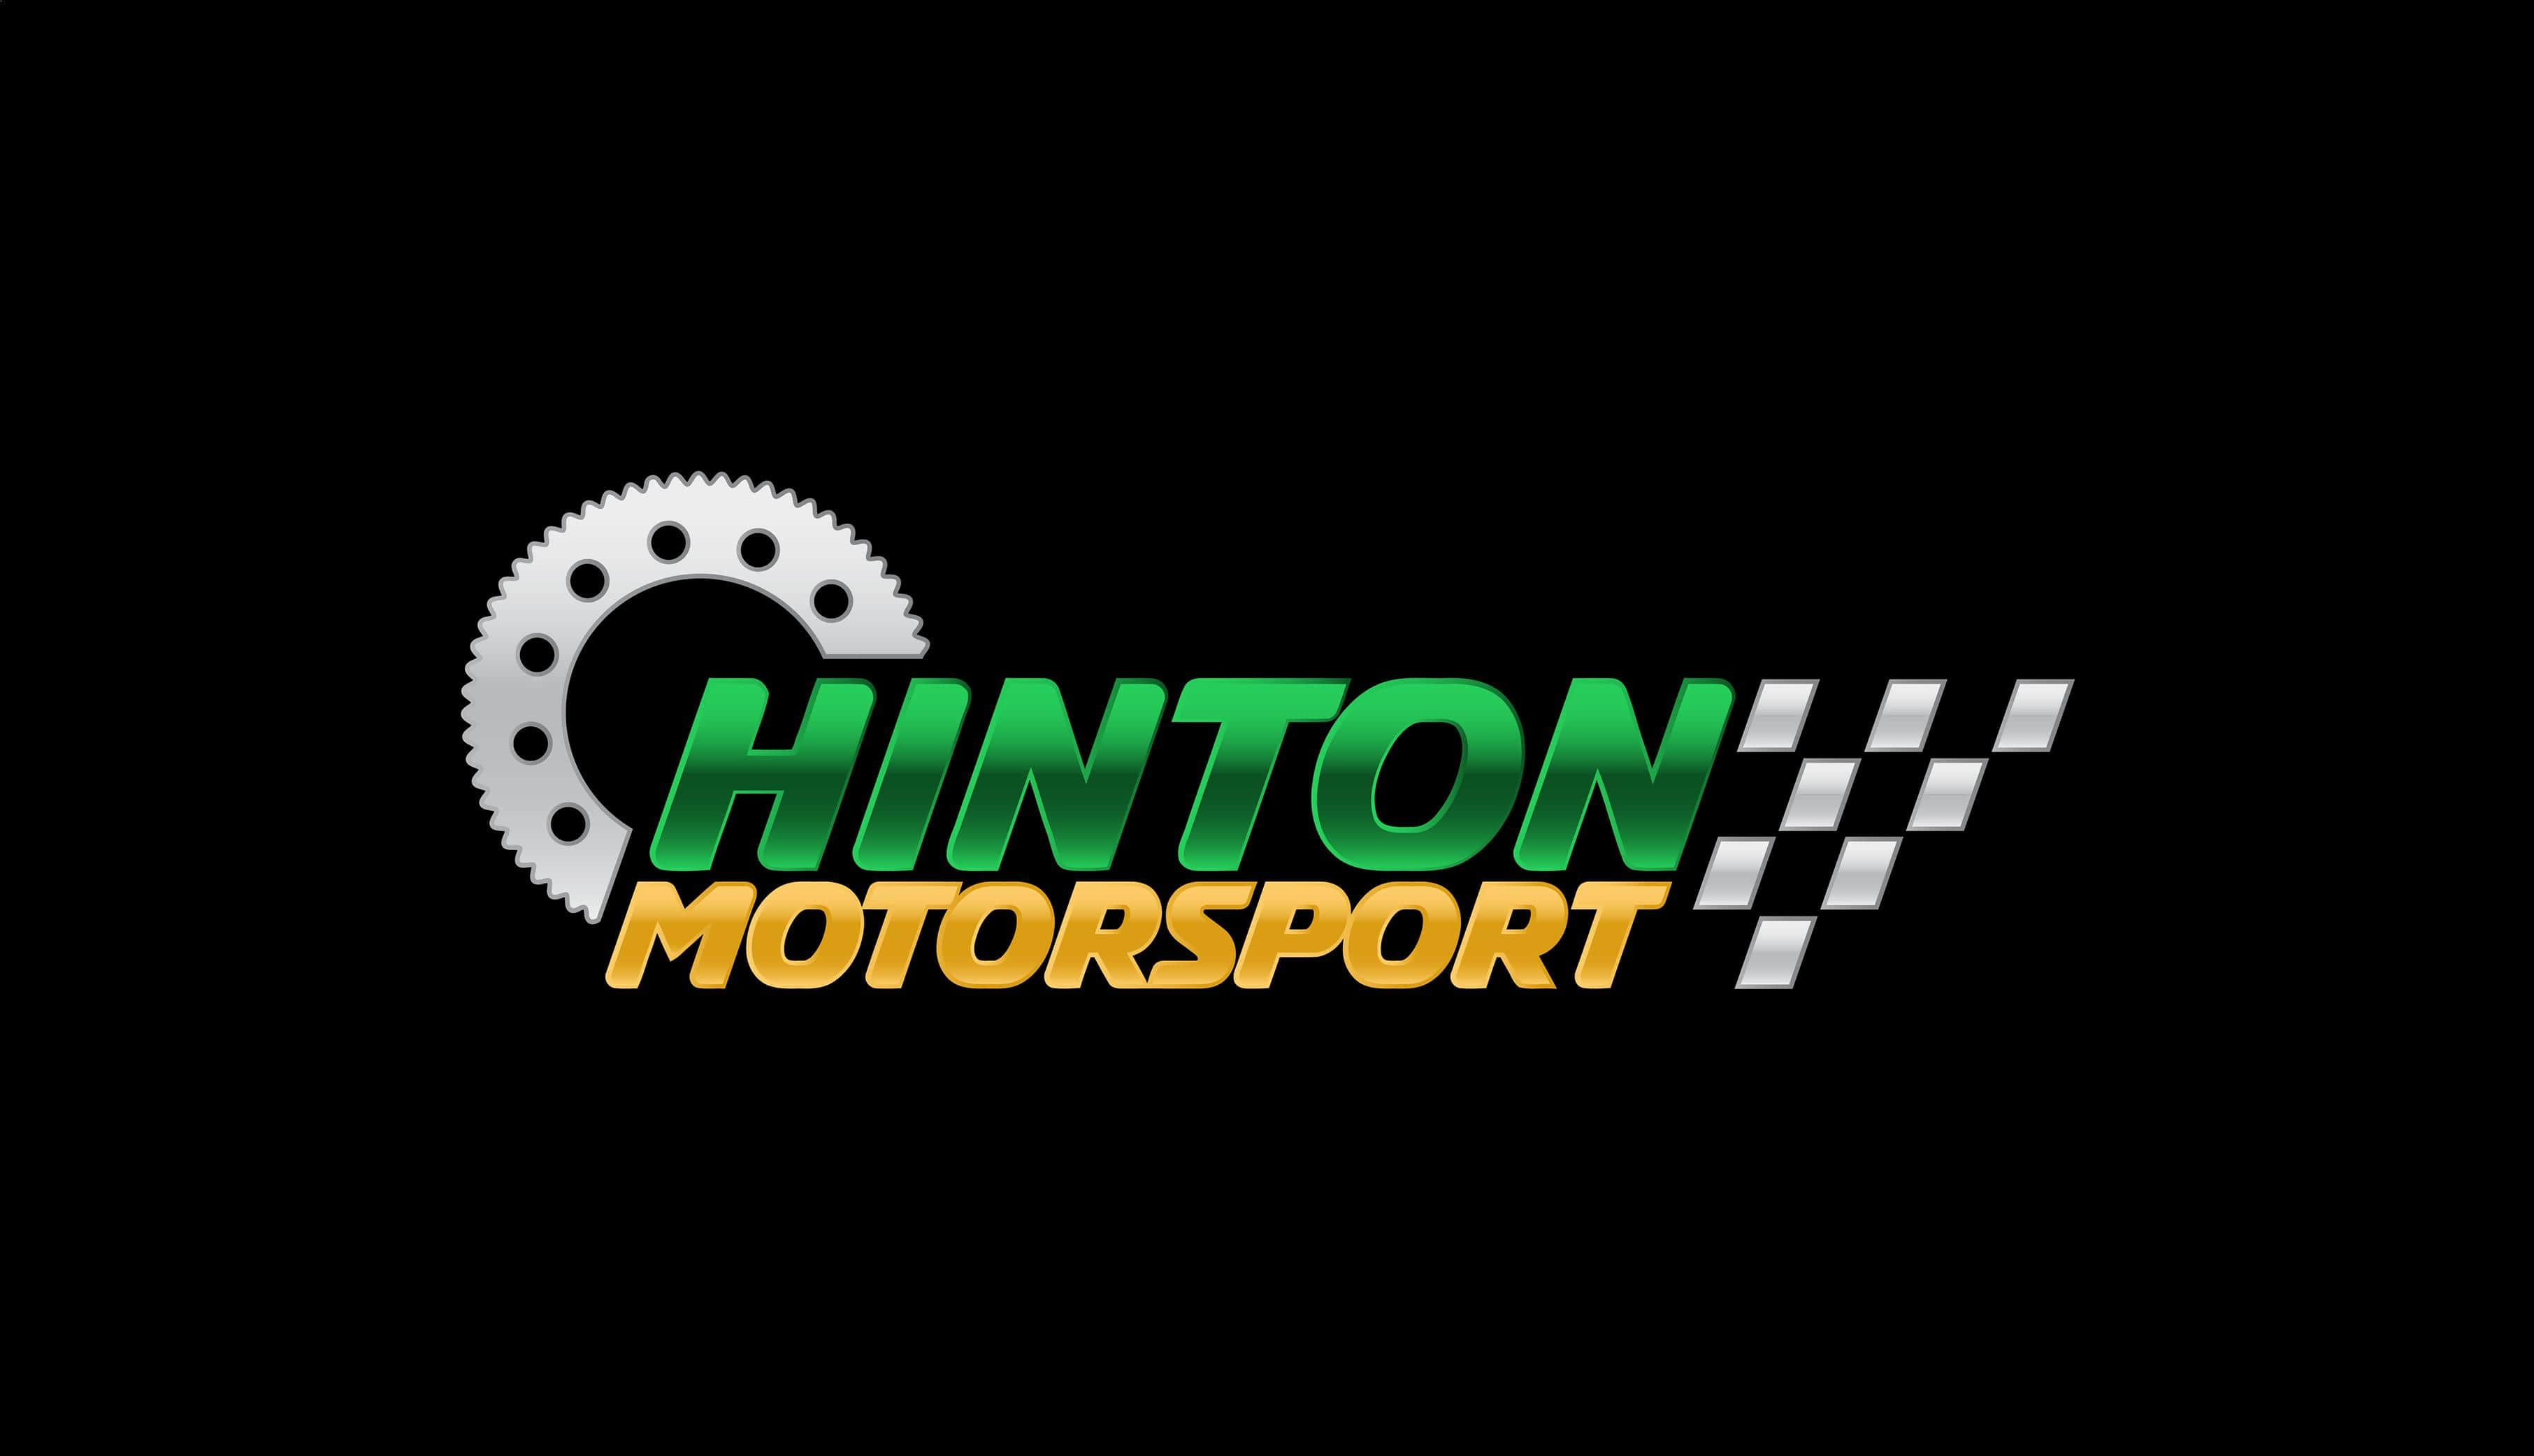 Hinton Motorsport - Logo 2